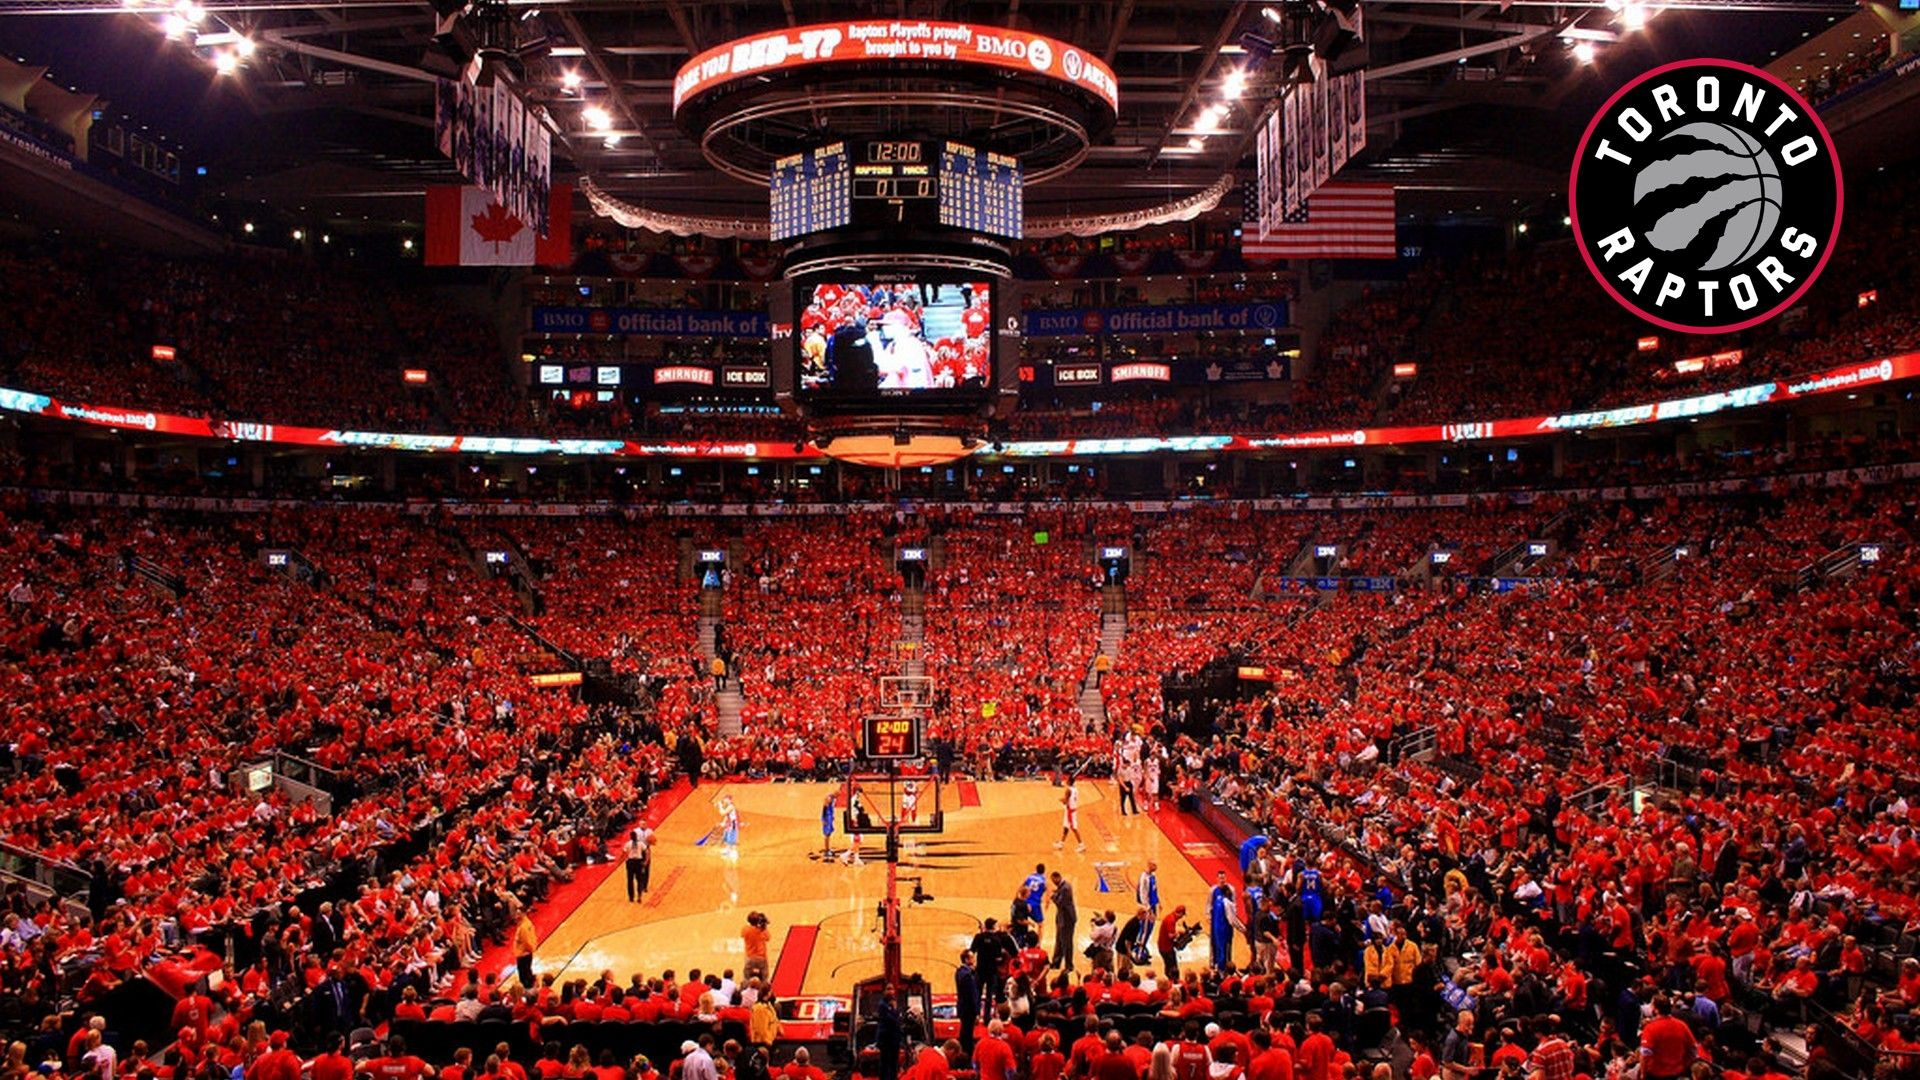 Toronto Raptors Stadium Desktop Wallpapers Is The Perfect High Quality Nba Basketball Wallpaper With Hd Resolution Cli In 2020 Toronto Raptors Nba Pictures Raptors